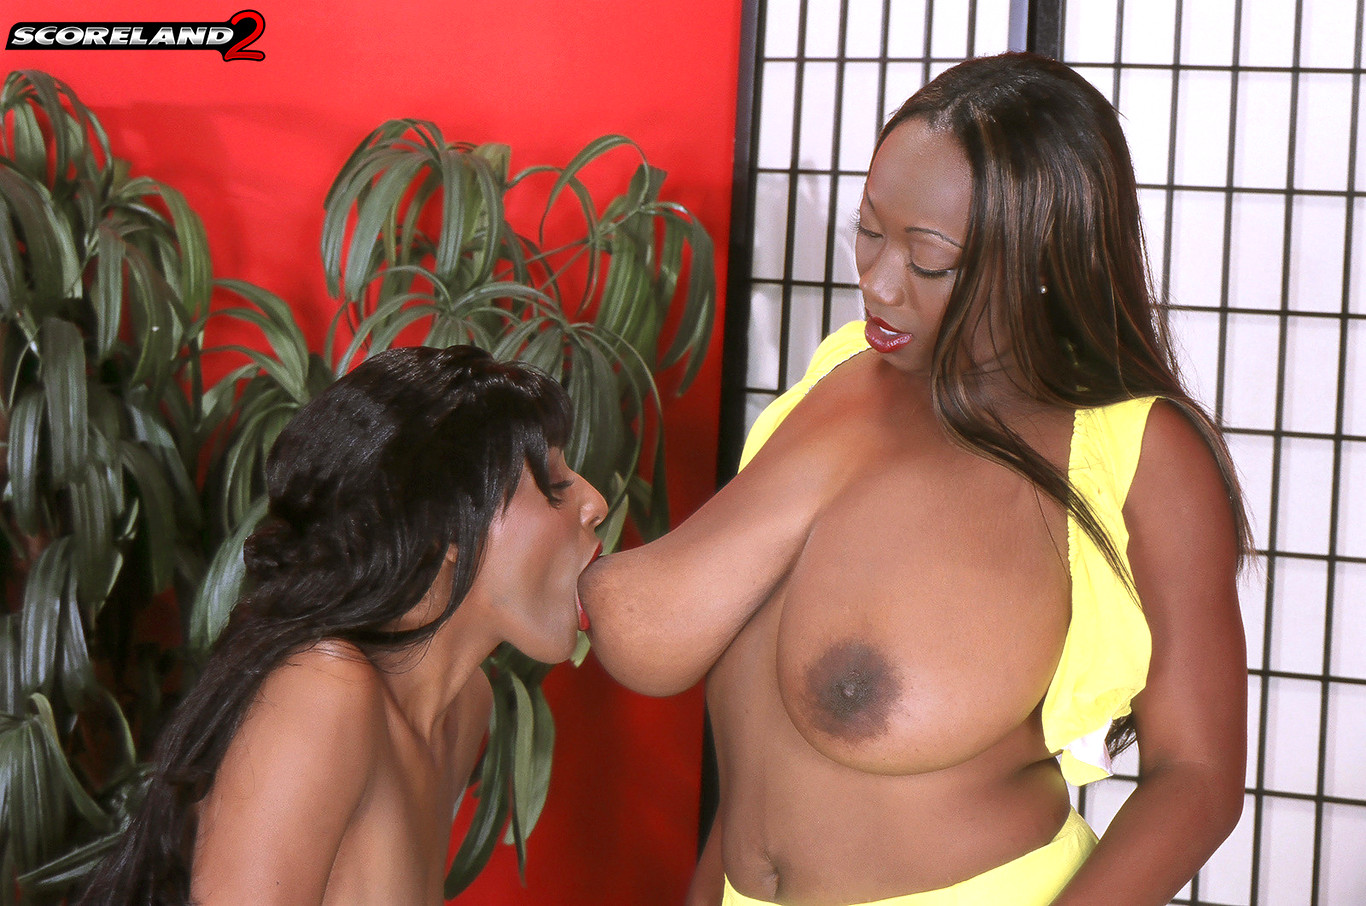 Africa sexxx big natural black boobs - 1 part 6